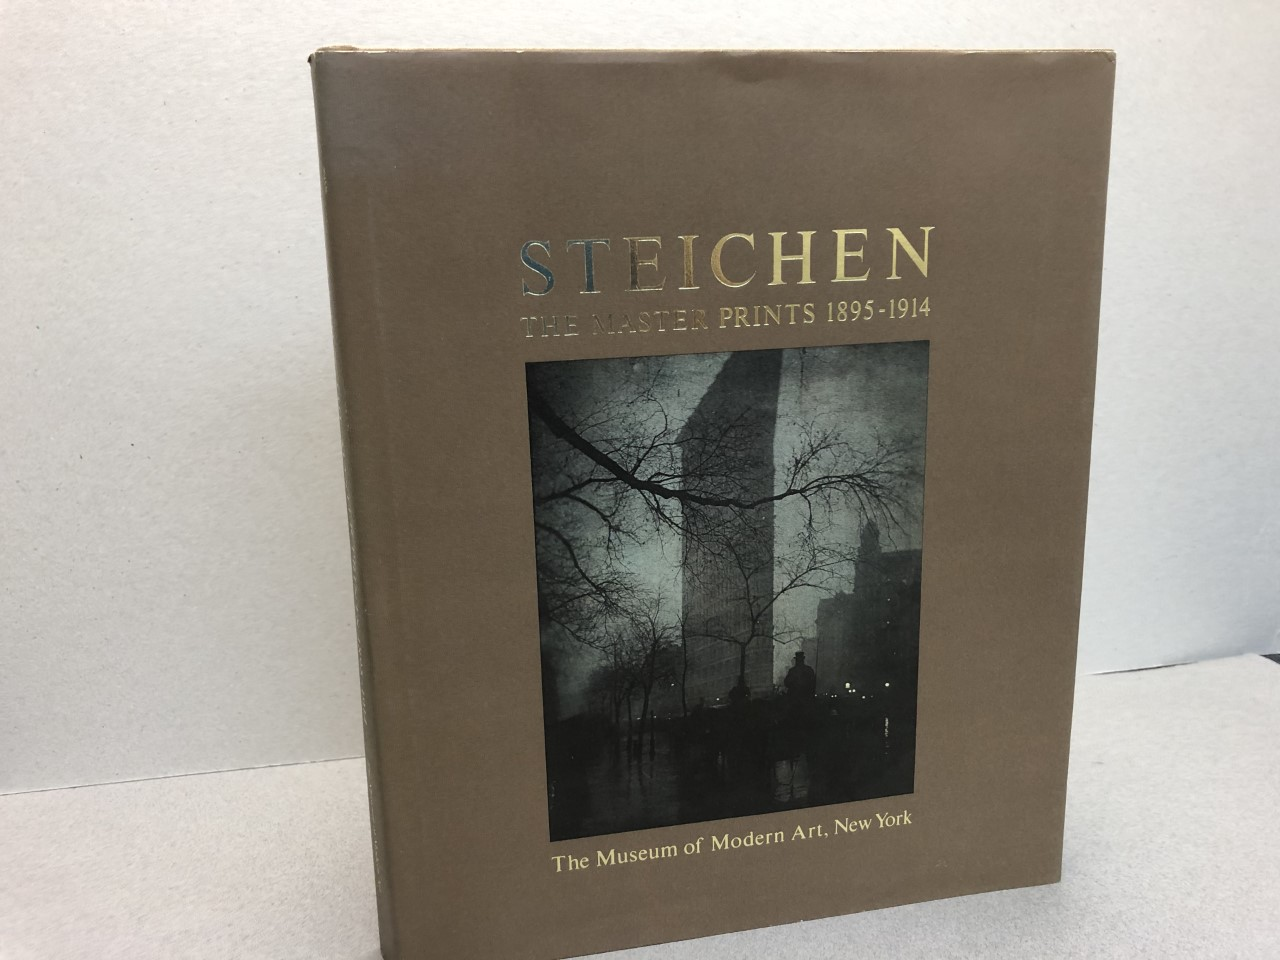 Image for STEICHEN : The Master Prints 1895-1914 The Symbolist Period